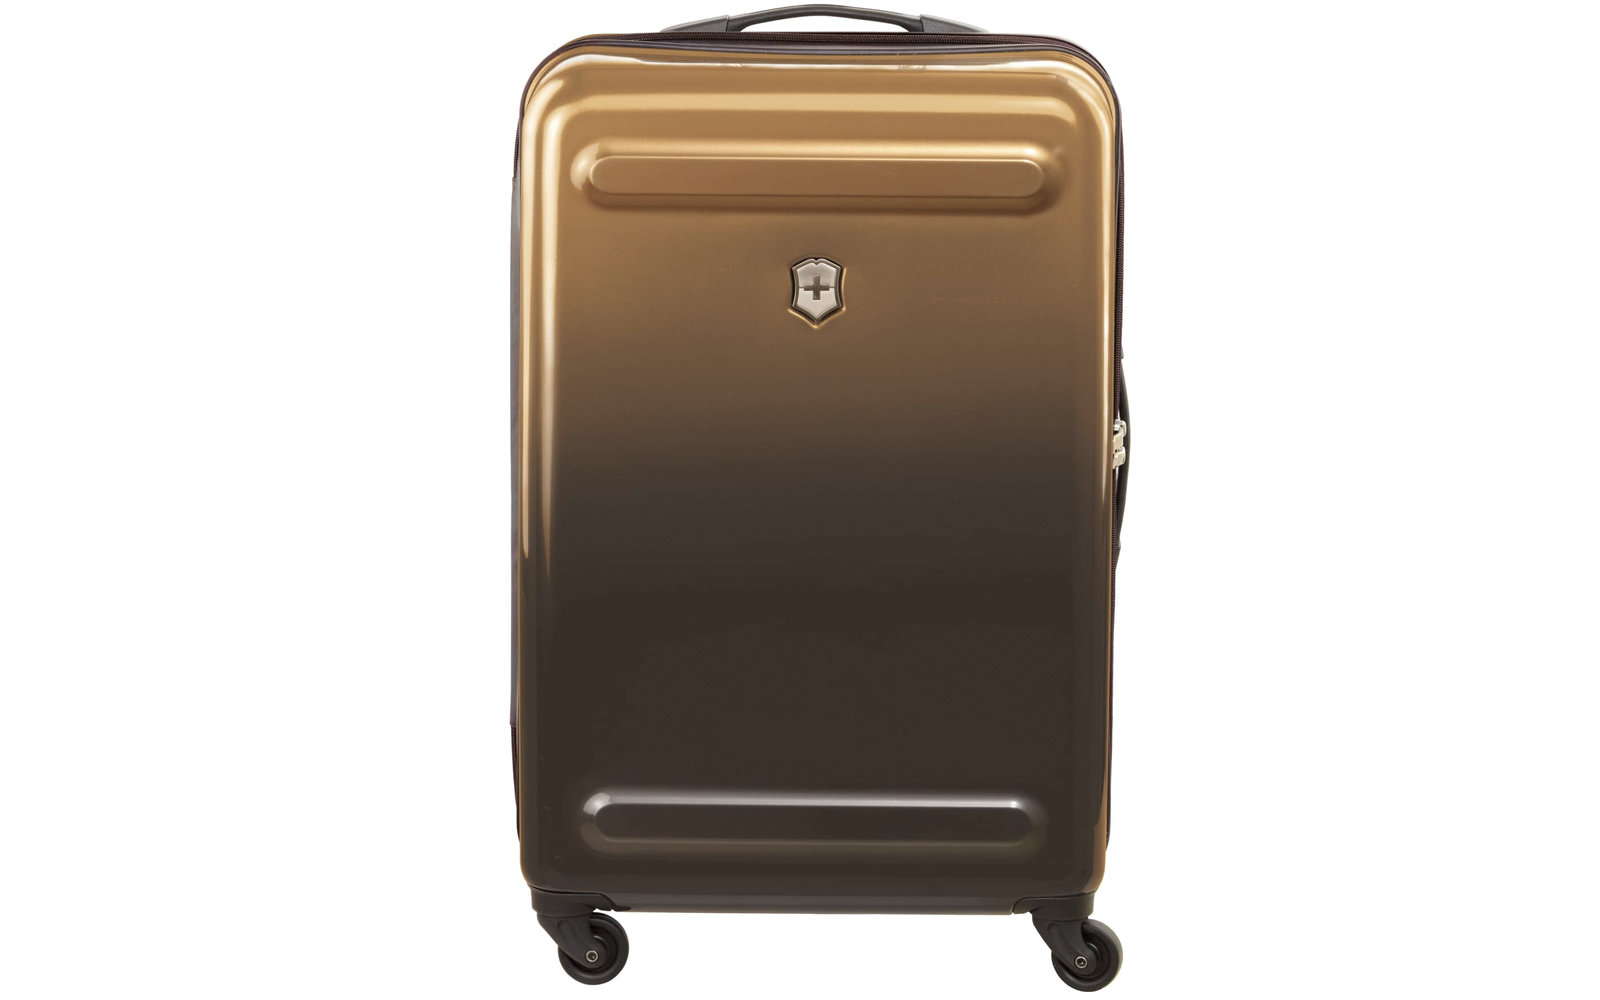 Victorinox Swiss Army luggage